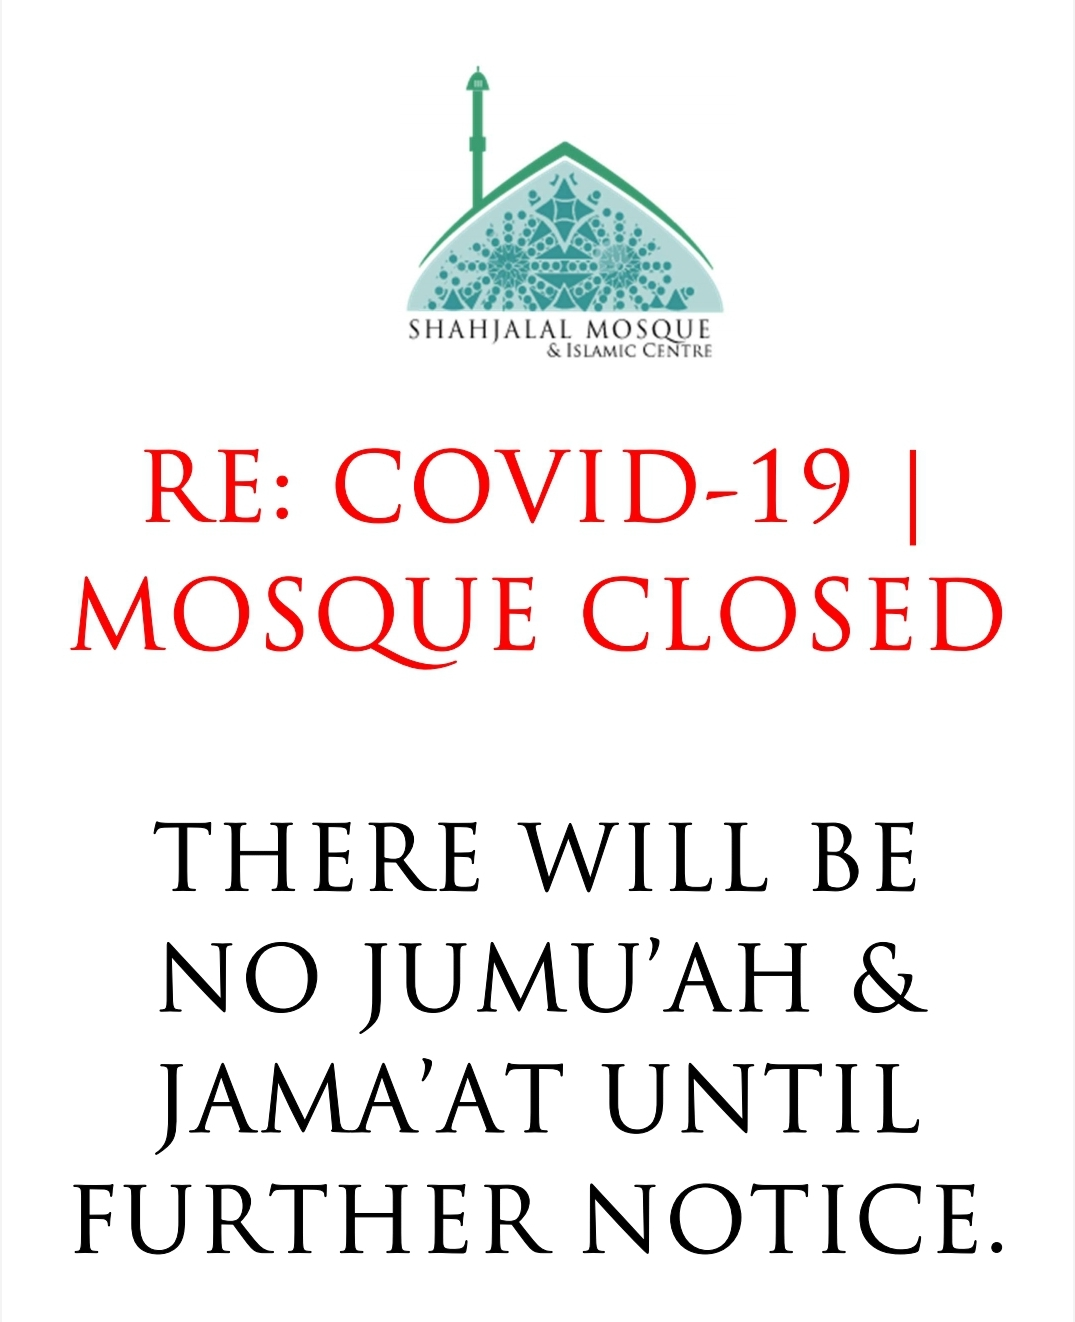 COVID-19 Shahjalal Mosque Manchester